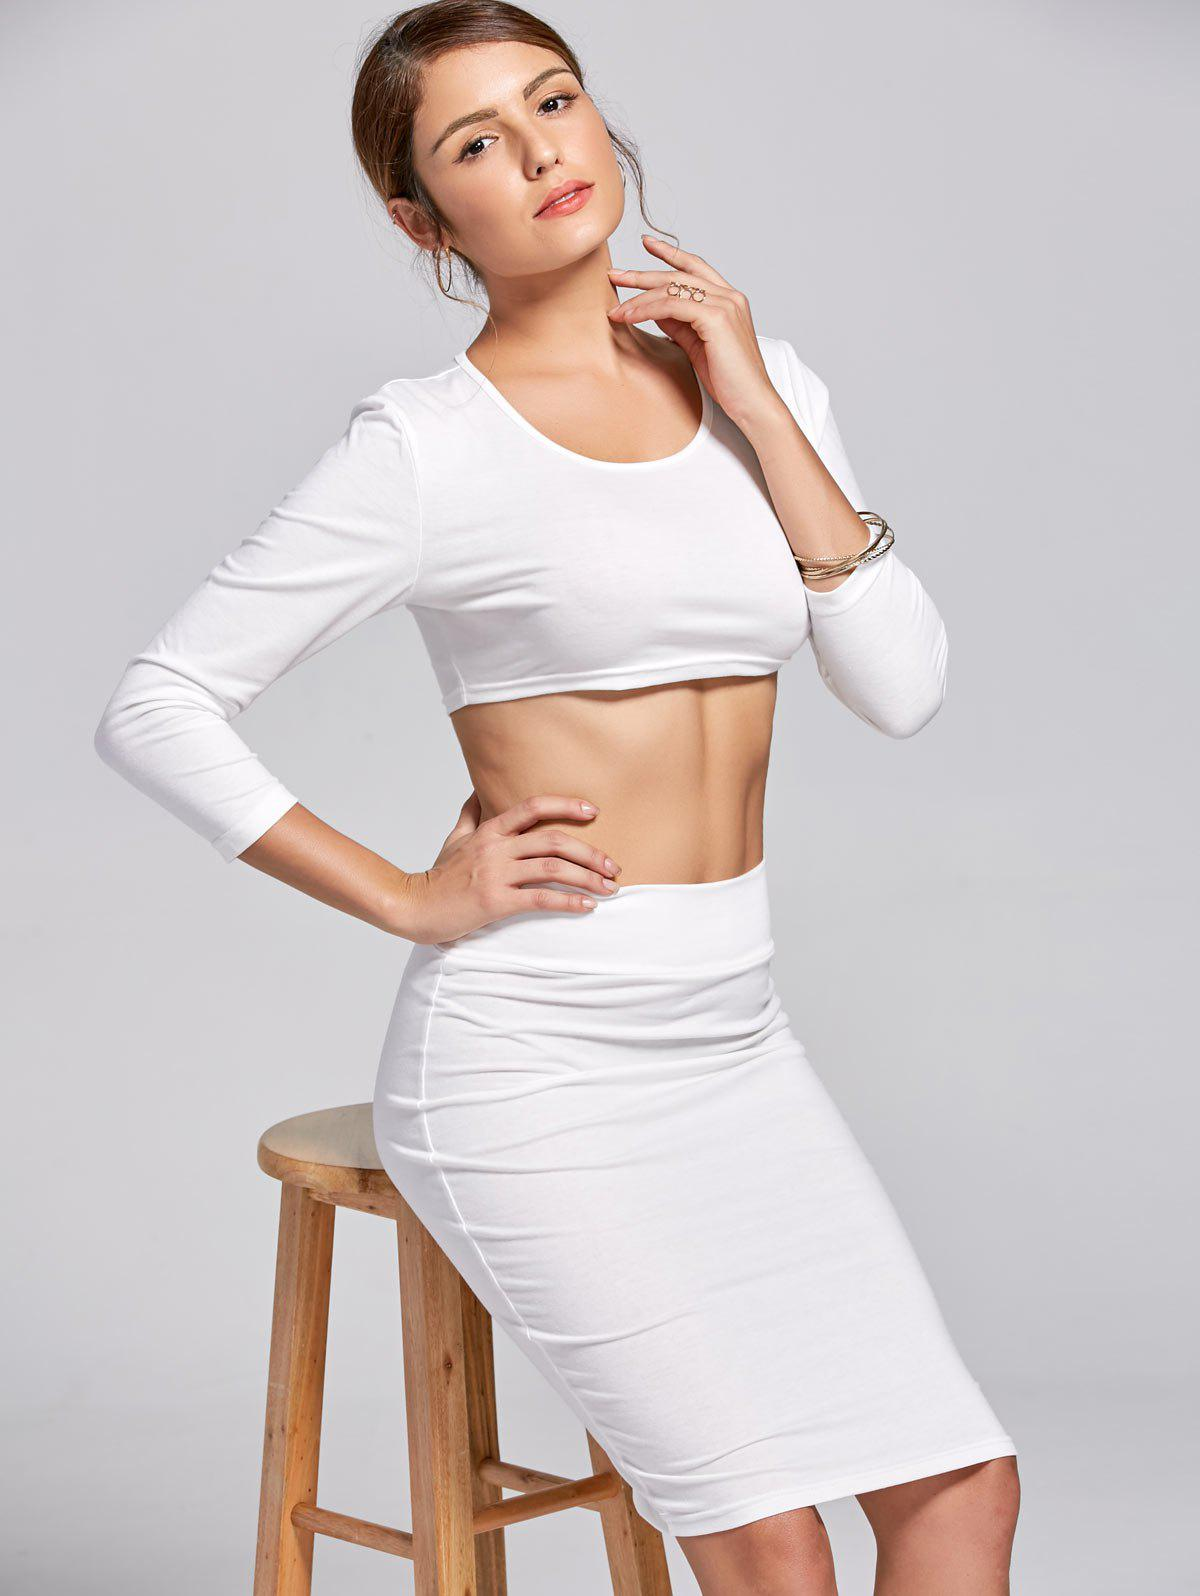 Stylish Women's Scoop Neck Long Sleeve Solid Color Crop Top and Skirt Suit - WHITE M